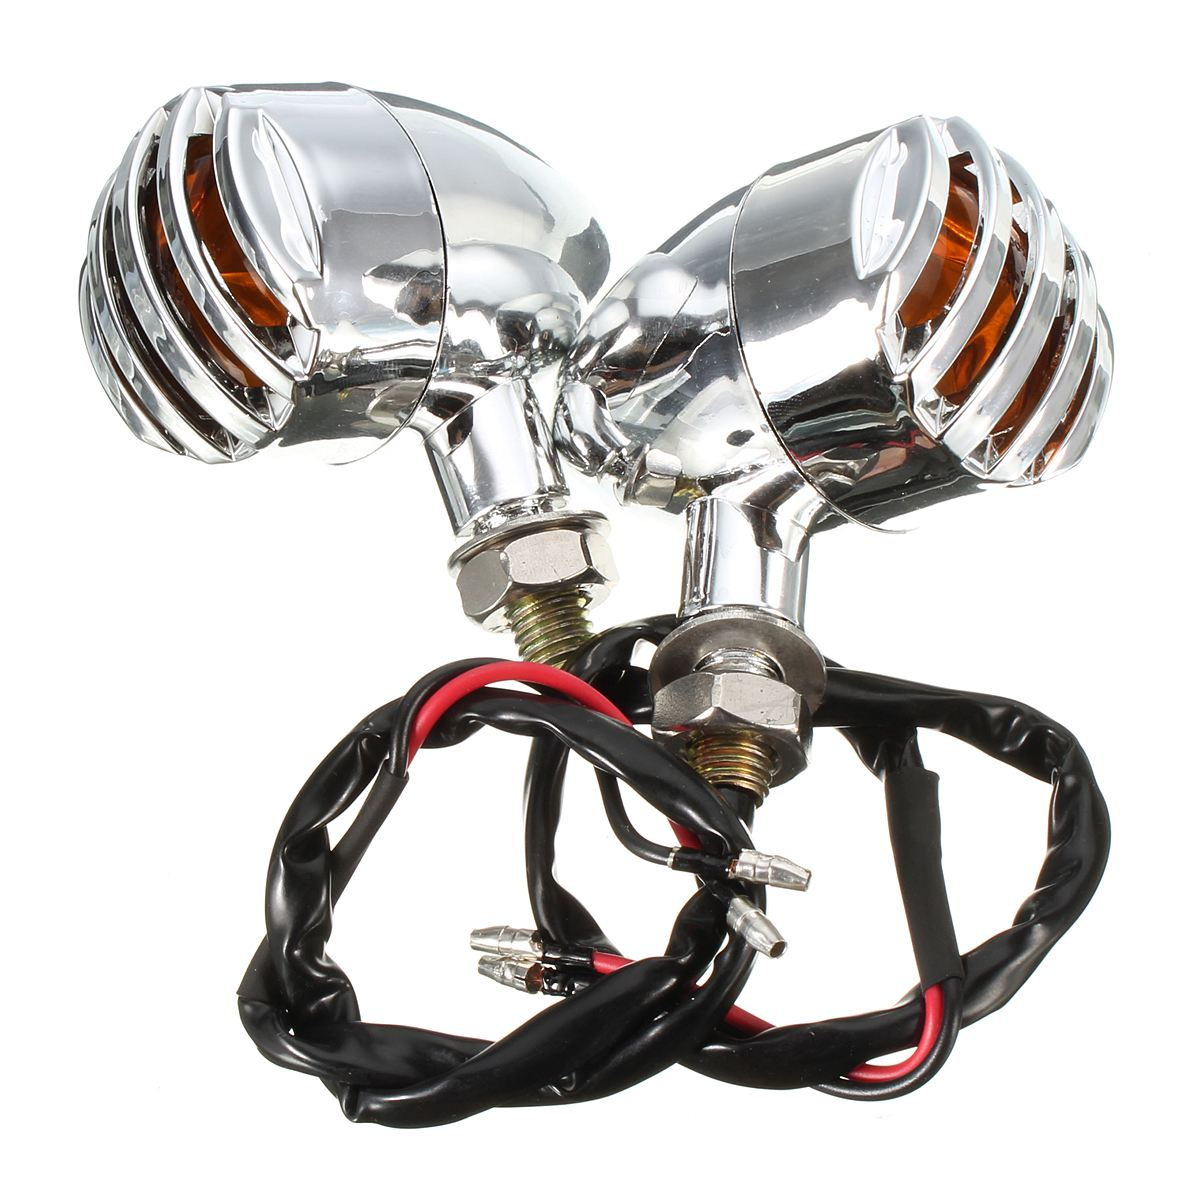 lowest price Newest 2PCS 80W 6000LM 6500K  T6 LED Motorcycle Boat Spot Driving Headlight Motorbike Fog Head Light Lamp with Switch